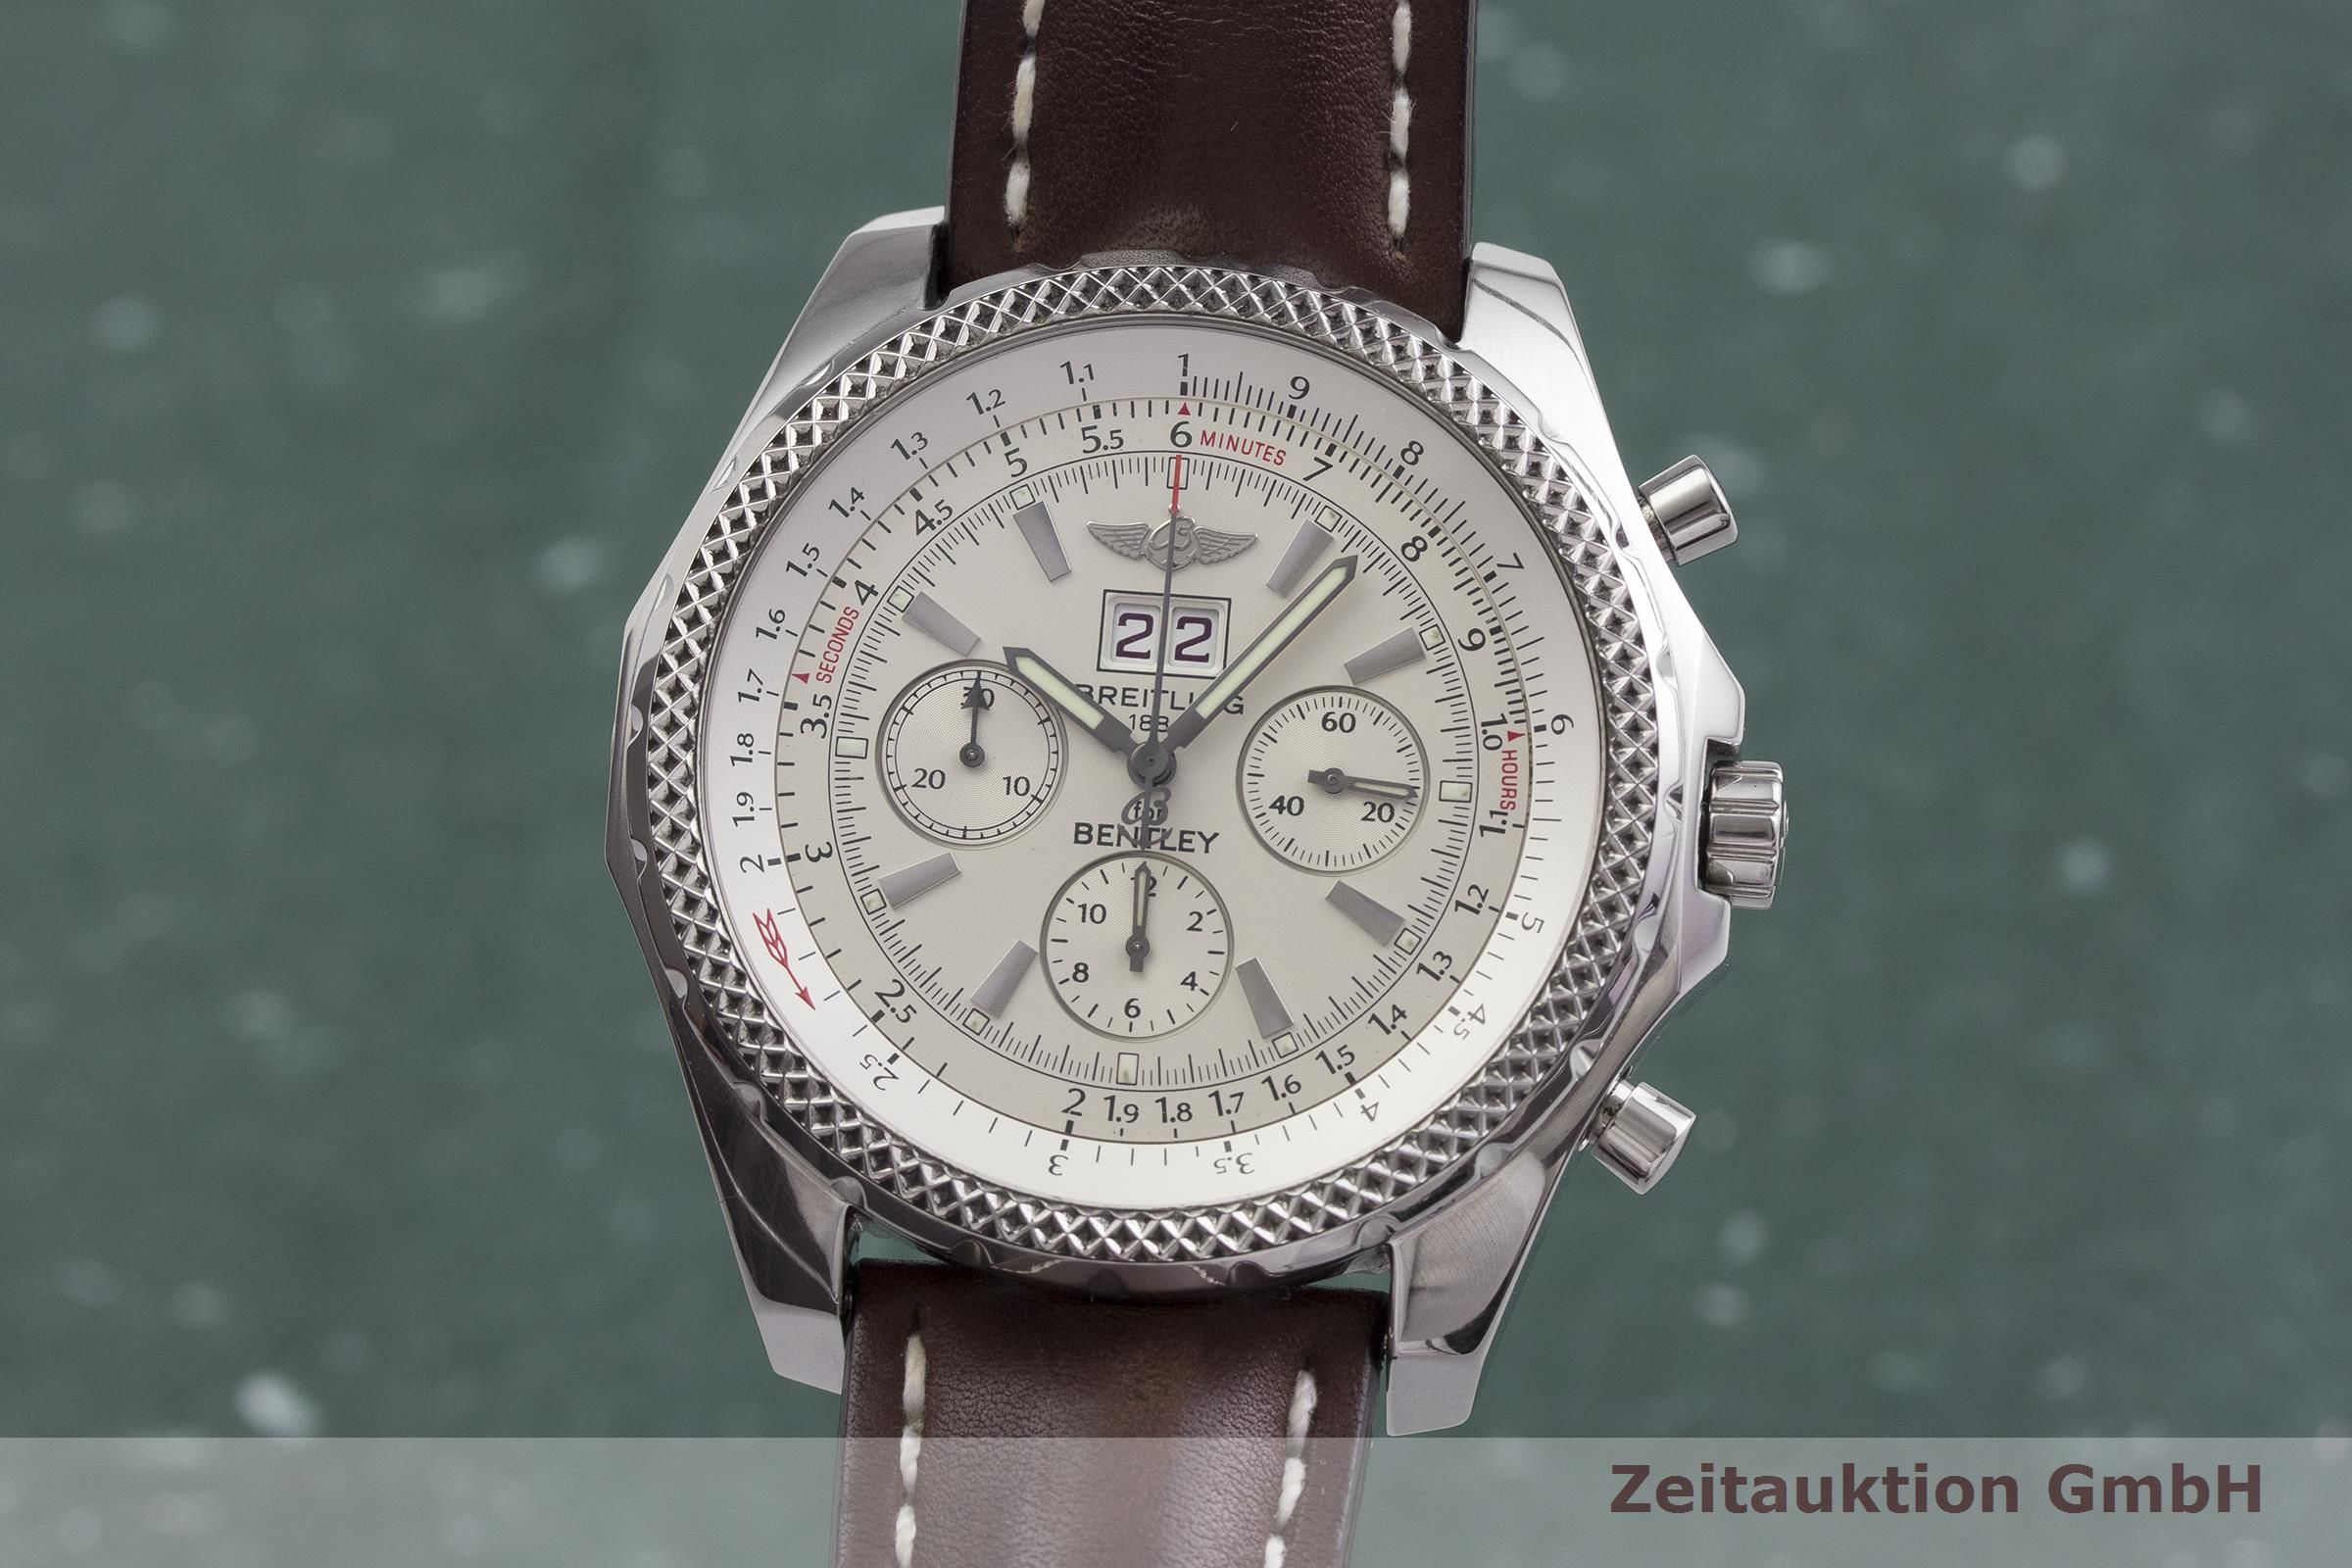 Breitling Bentley 6 75 Chronograph Steel Automatic Kal B44 Eta 2892 A2 Ref A44362 2000083 Zeitauktion